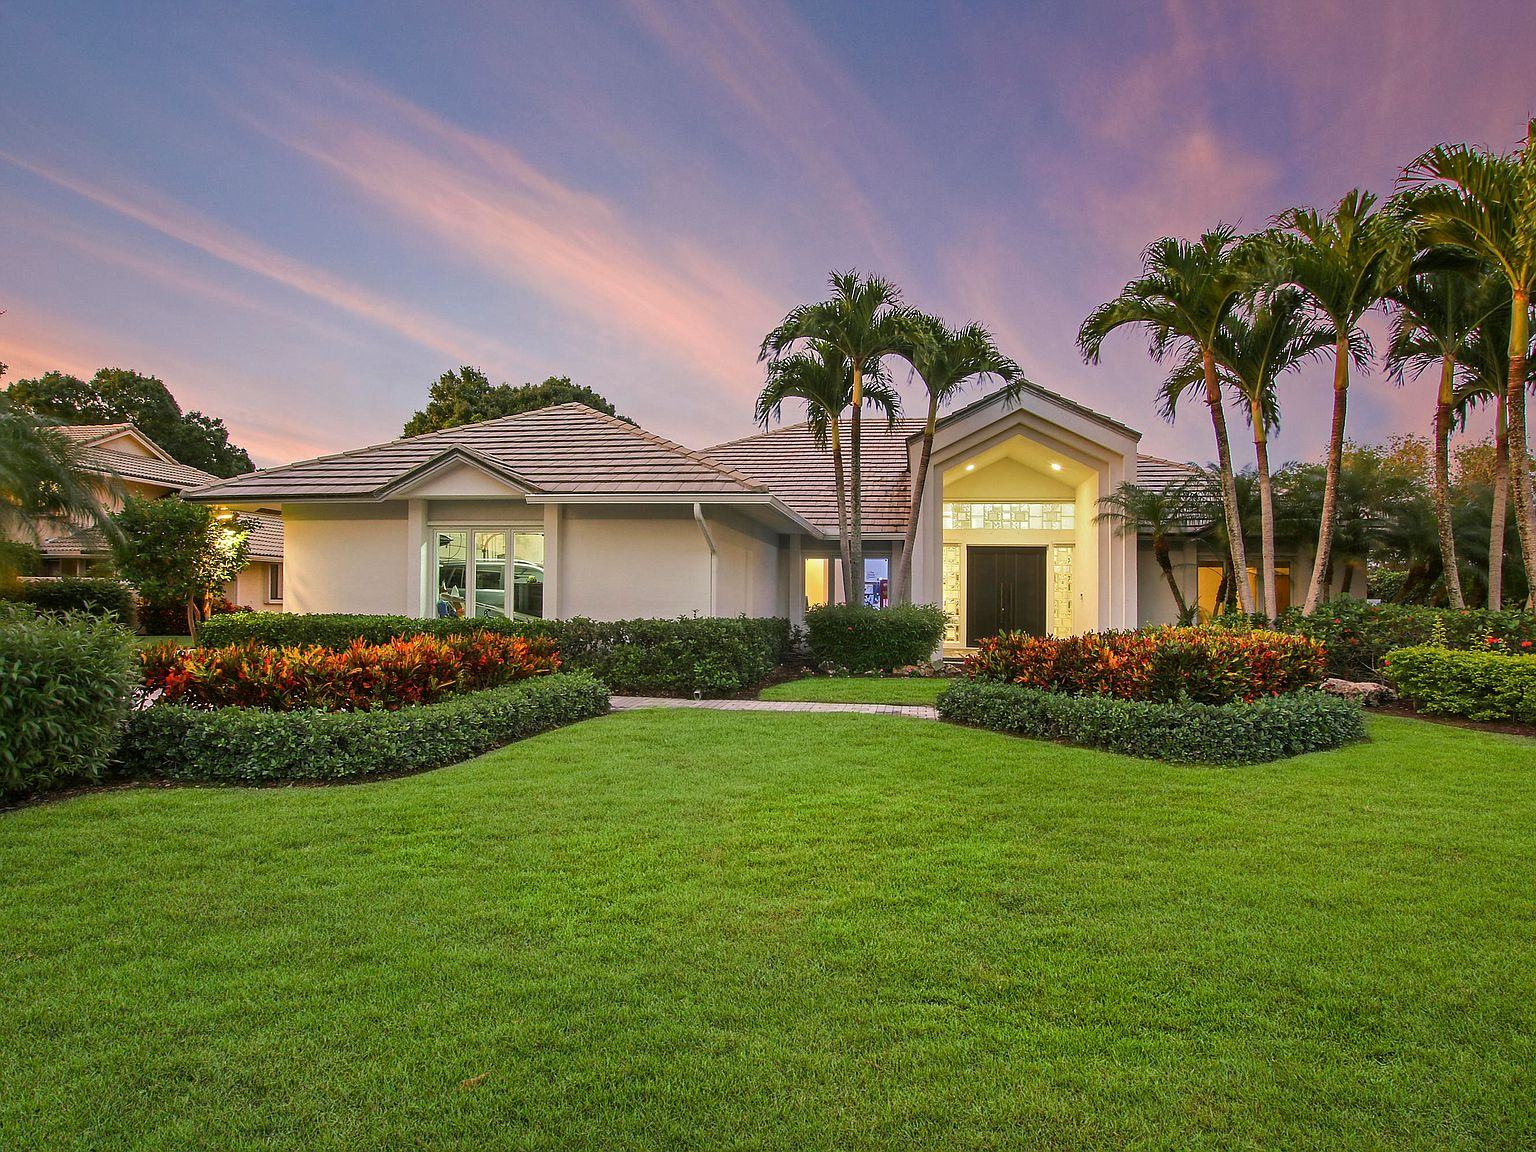 f61dd680d36bb37374436d40d6e5288b cc ft 1536 - Westwood Gardens Palm Beach Gardens For Rent